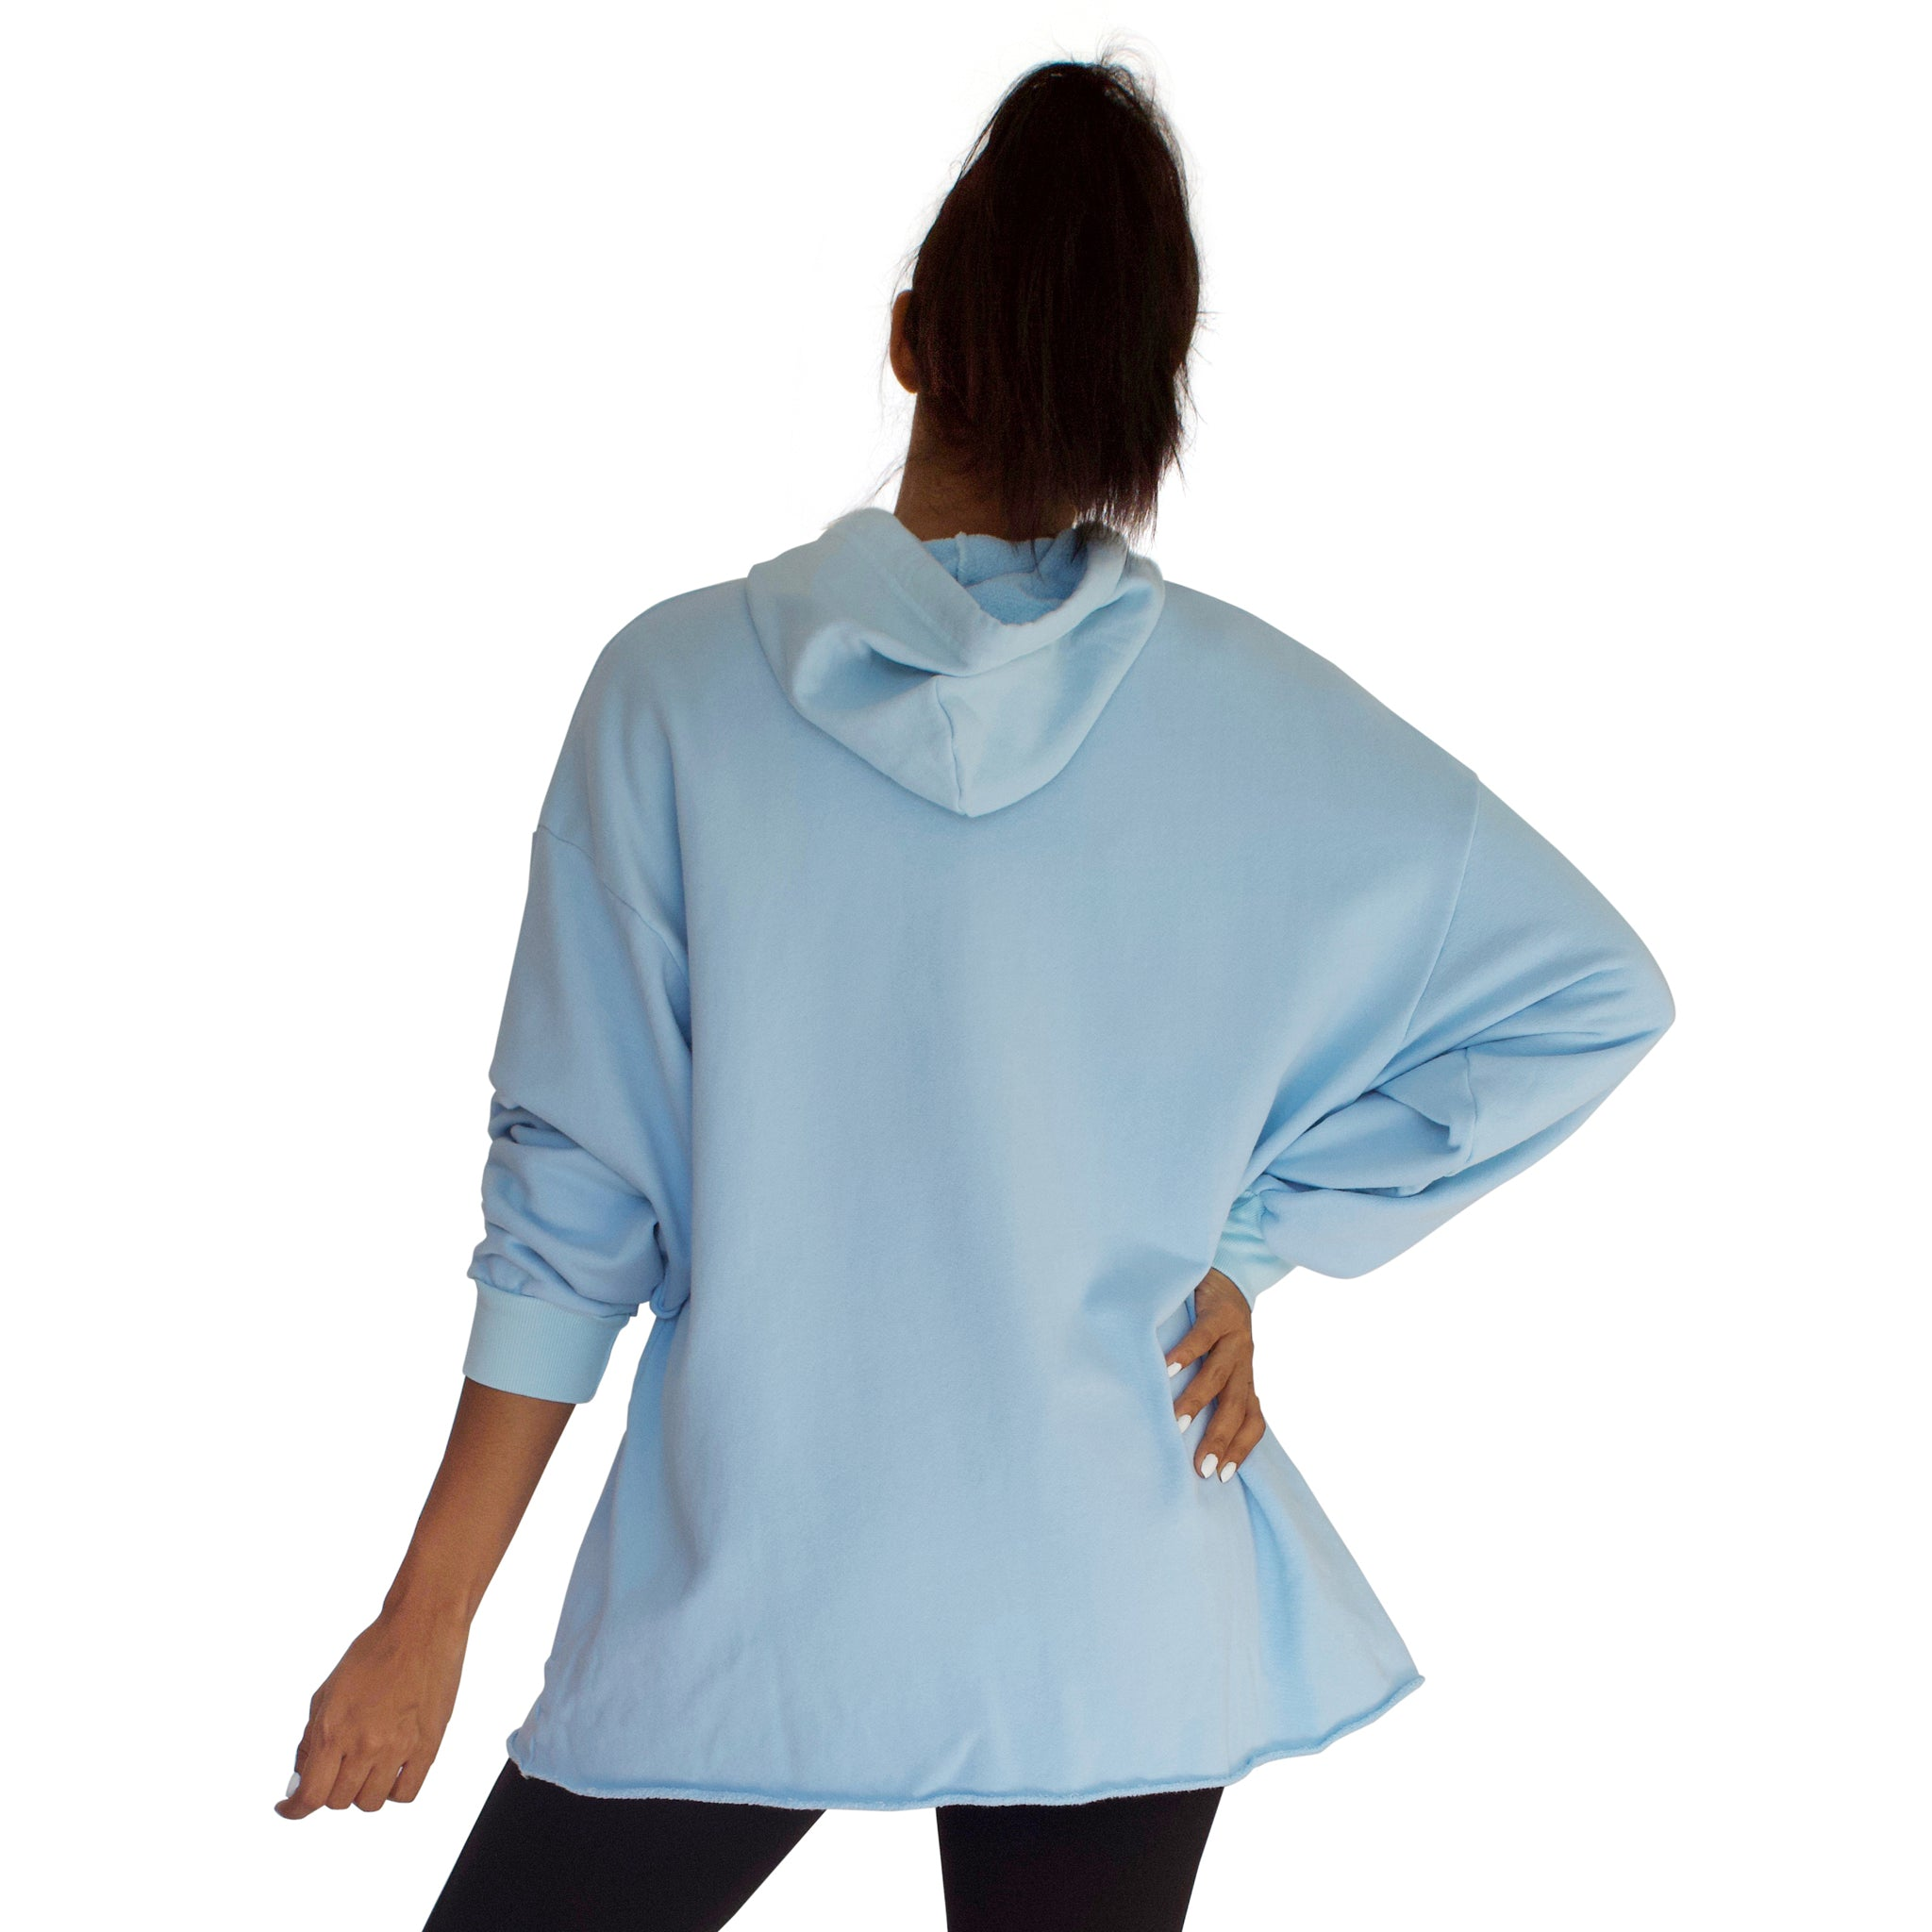 CC Beach Hoodie Pullover in Sky Blue back view